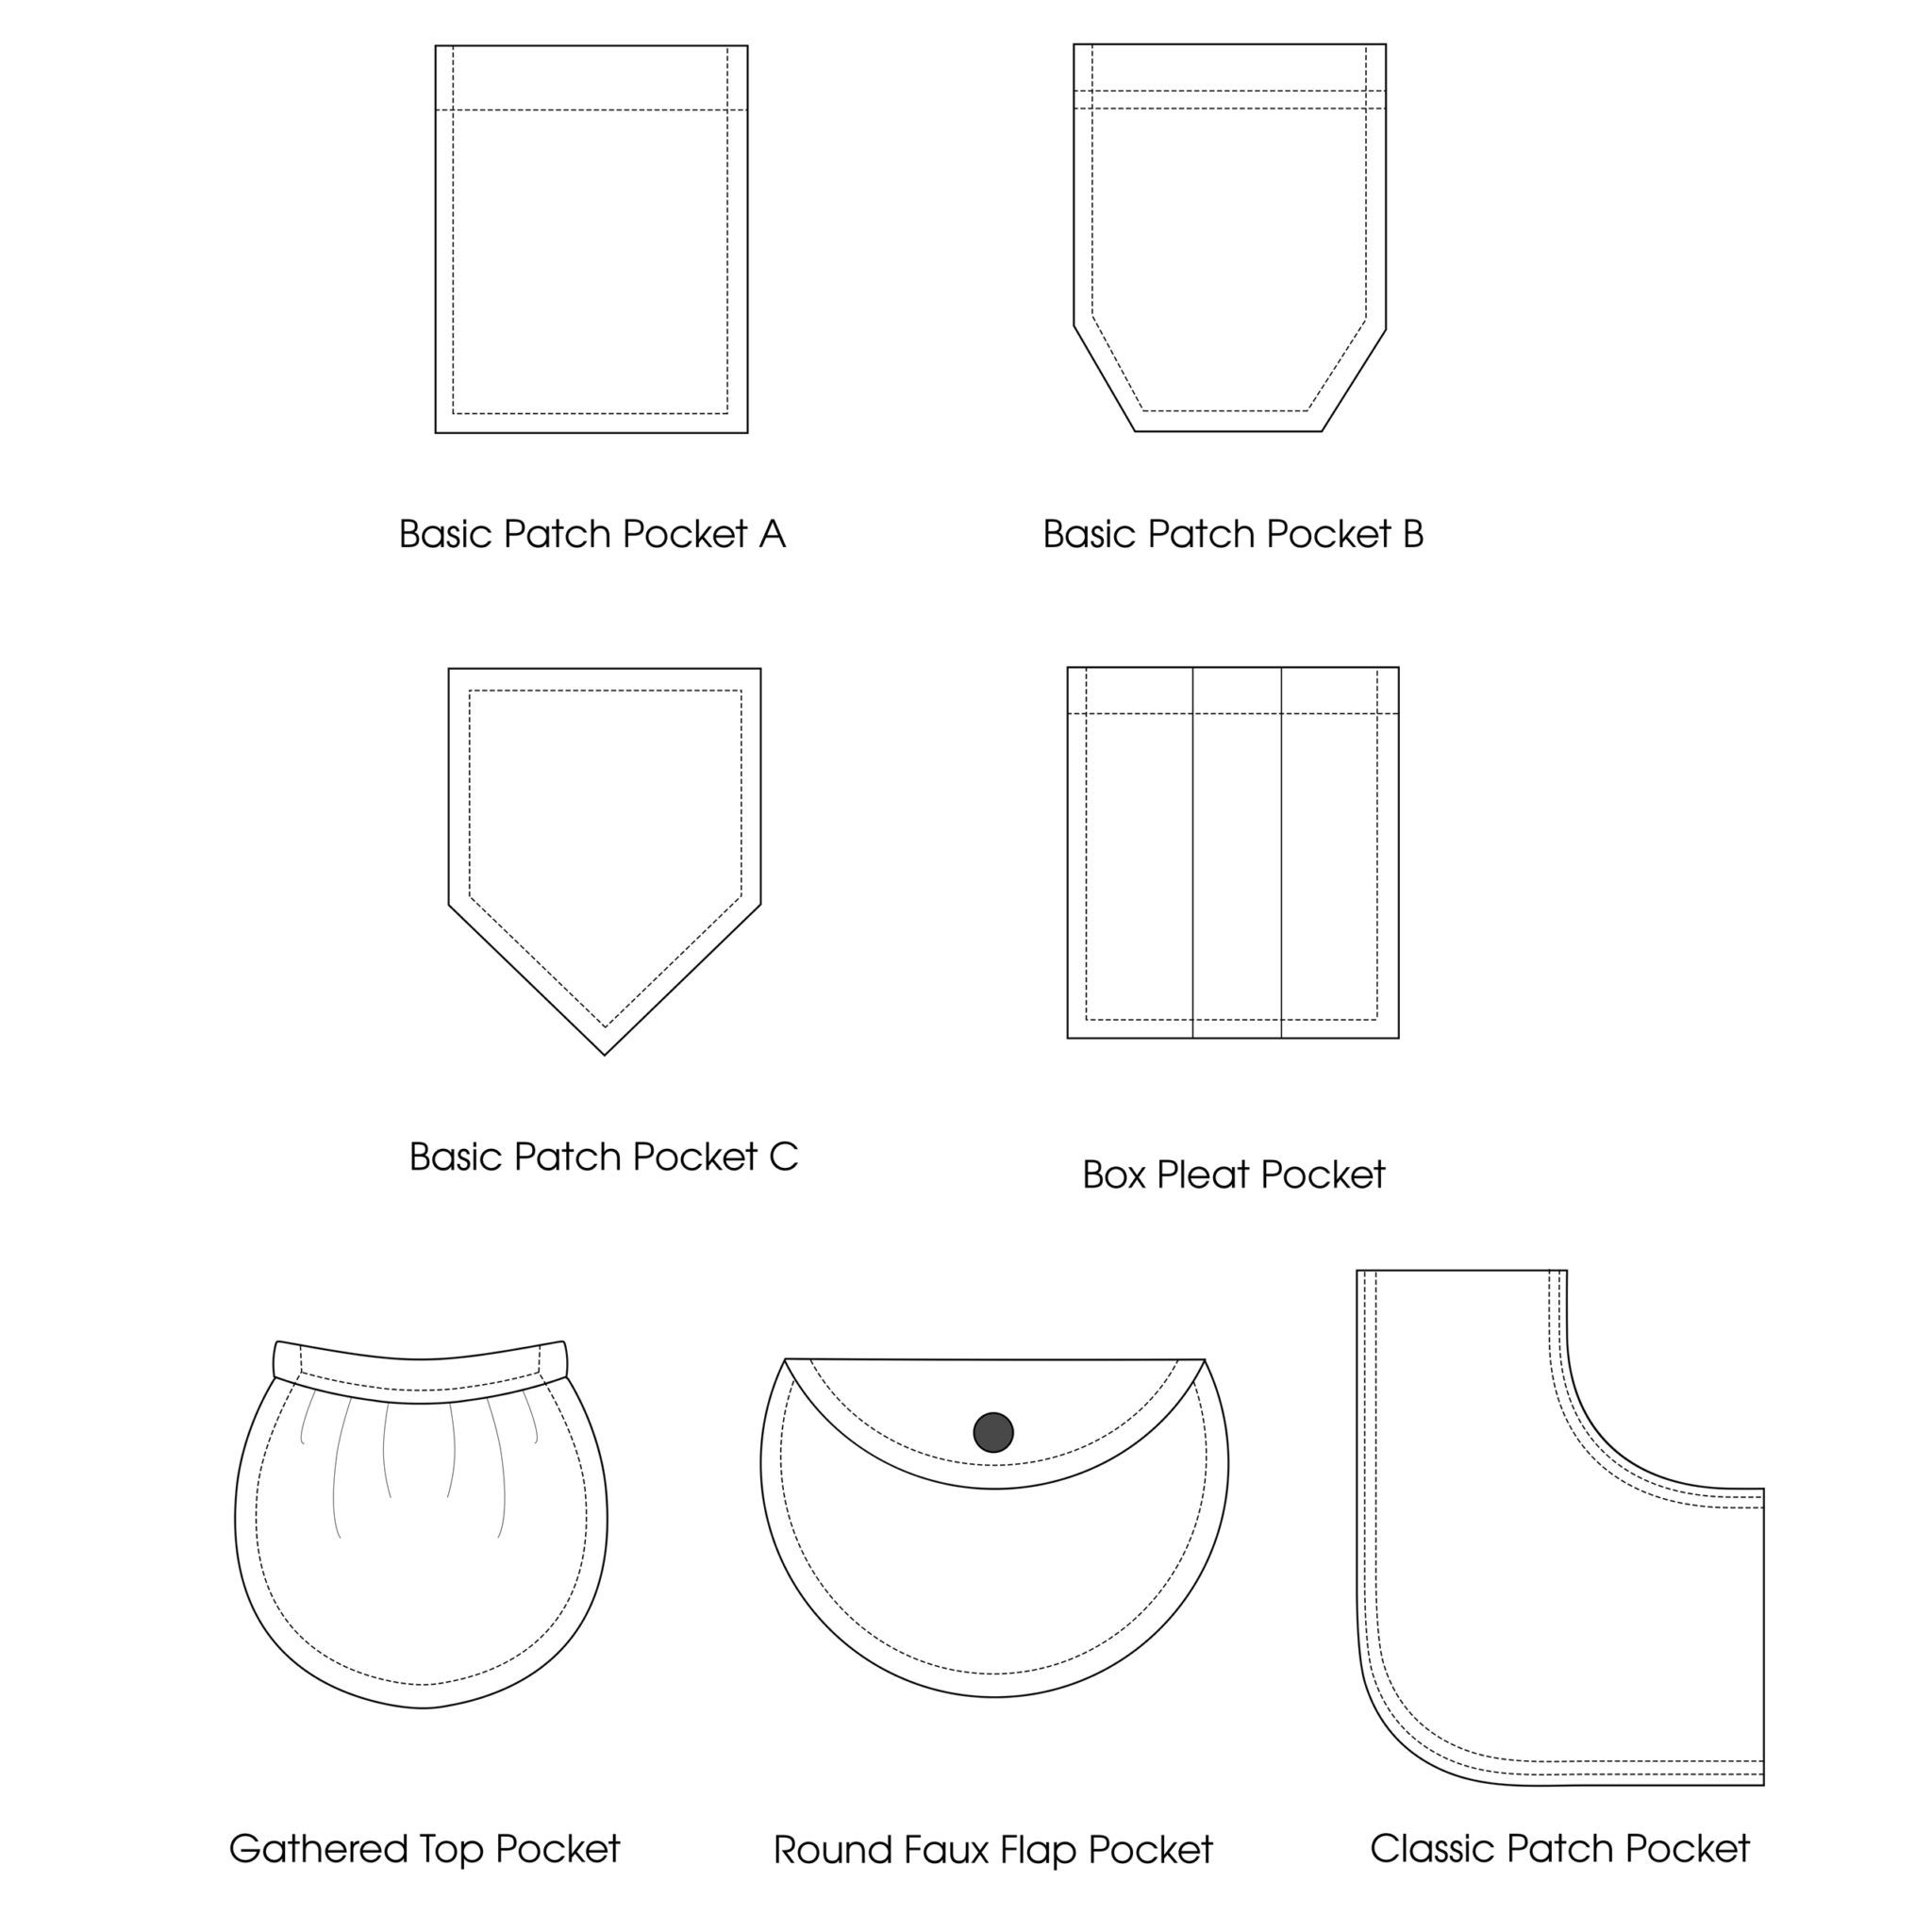 Ultimate Patch Pocket Sewing Patterns